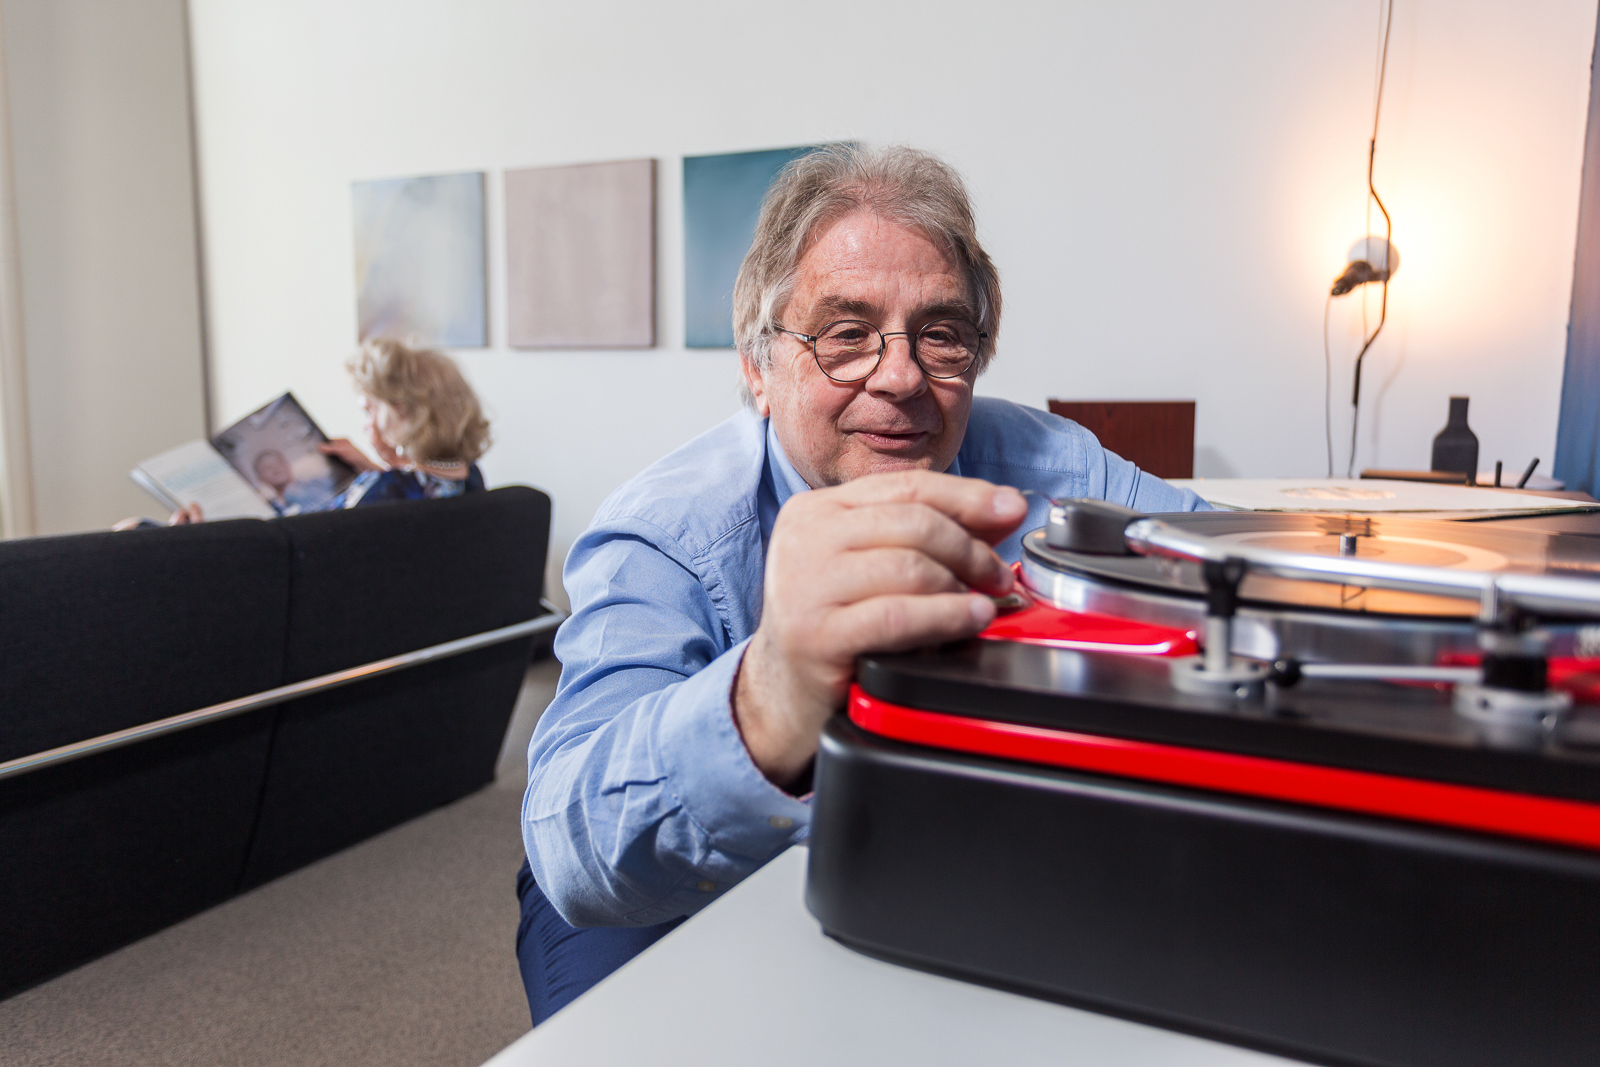 an elderly man carefully placing the needle on a vinyl record